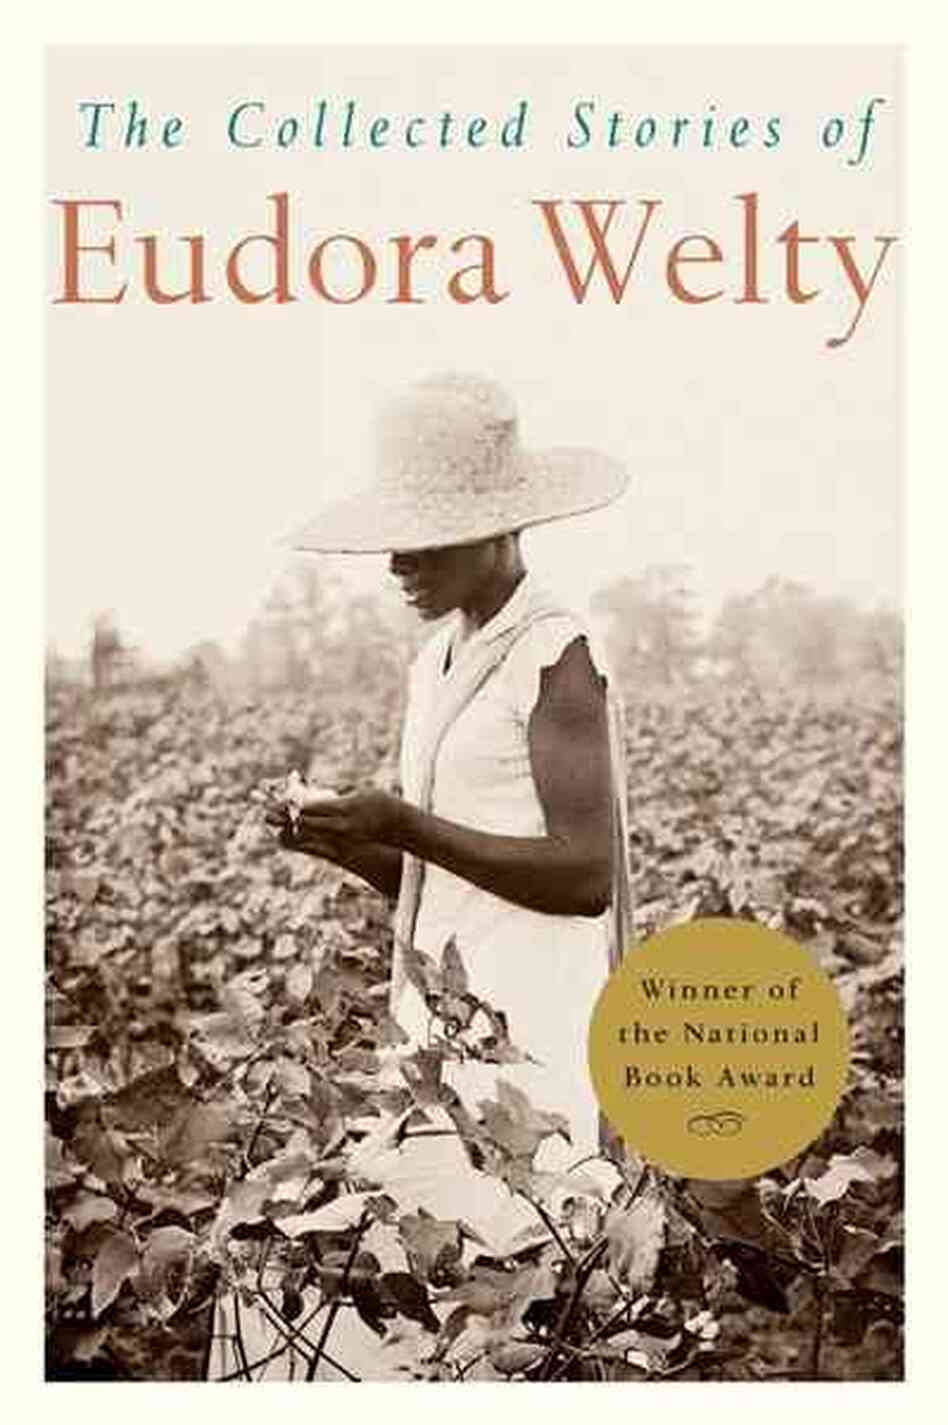 summary eudora welty A worn path by eudora welty is a short story about an elderly african-american woman who undertakes a familiar journey on a road in a rural area to acquire medicine for her grandson she expresses herself, both to her surroundings and in short spurts of spoken monologue, warning away animals and expressing the.